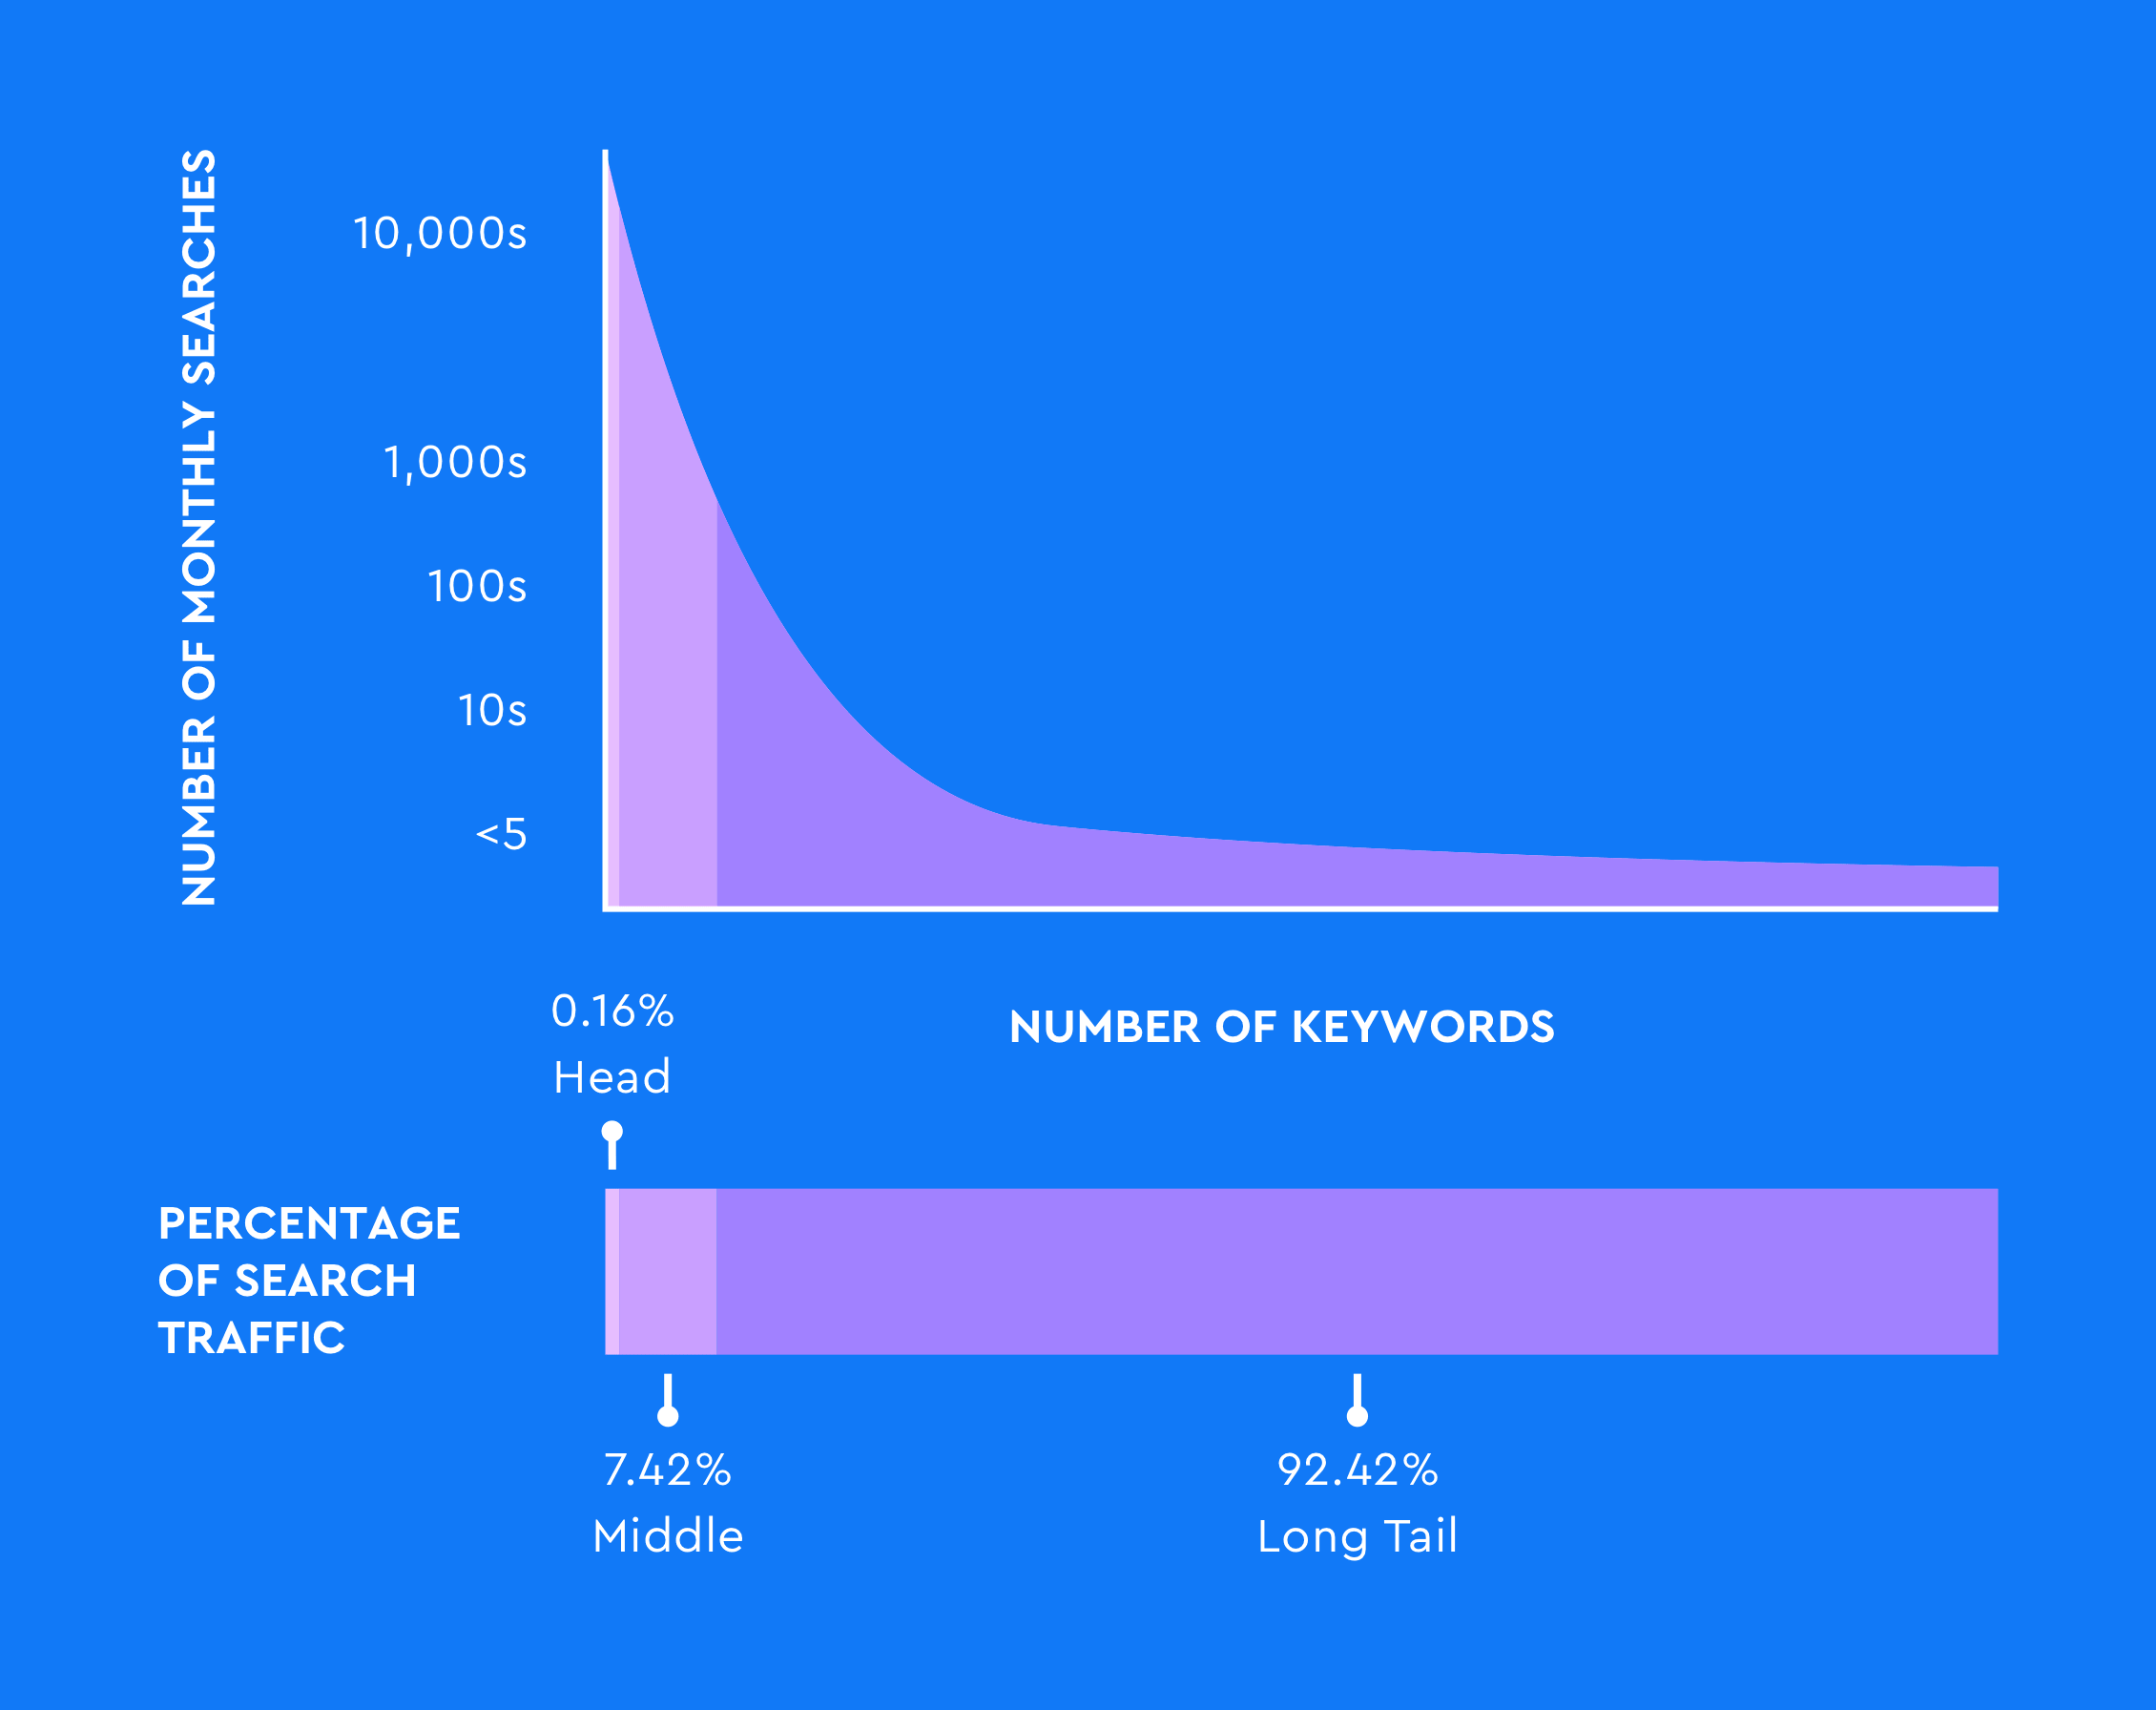 Long-tail keywords make up the vast majority of search queries